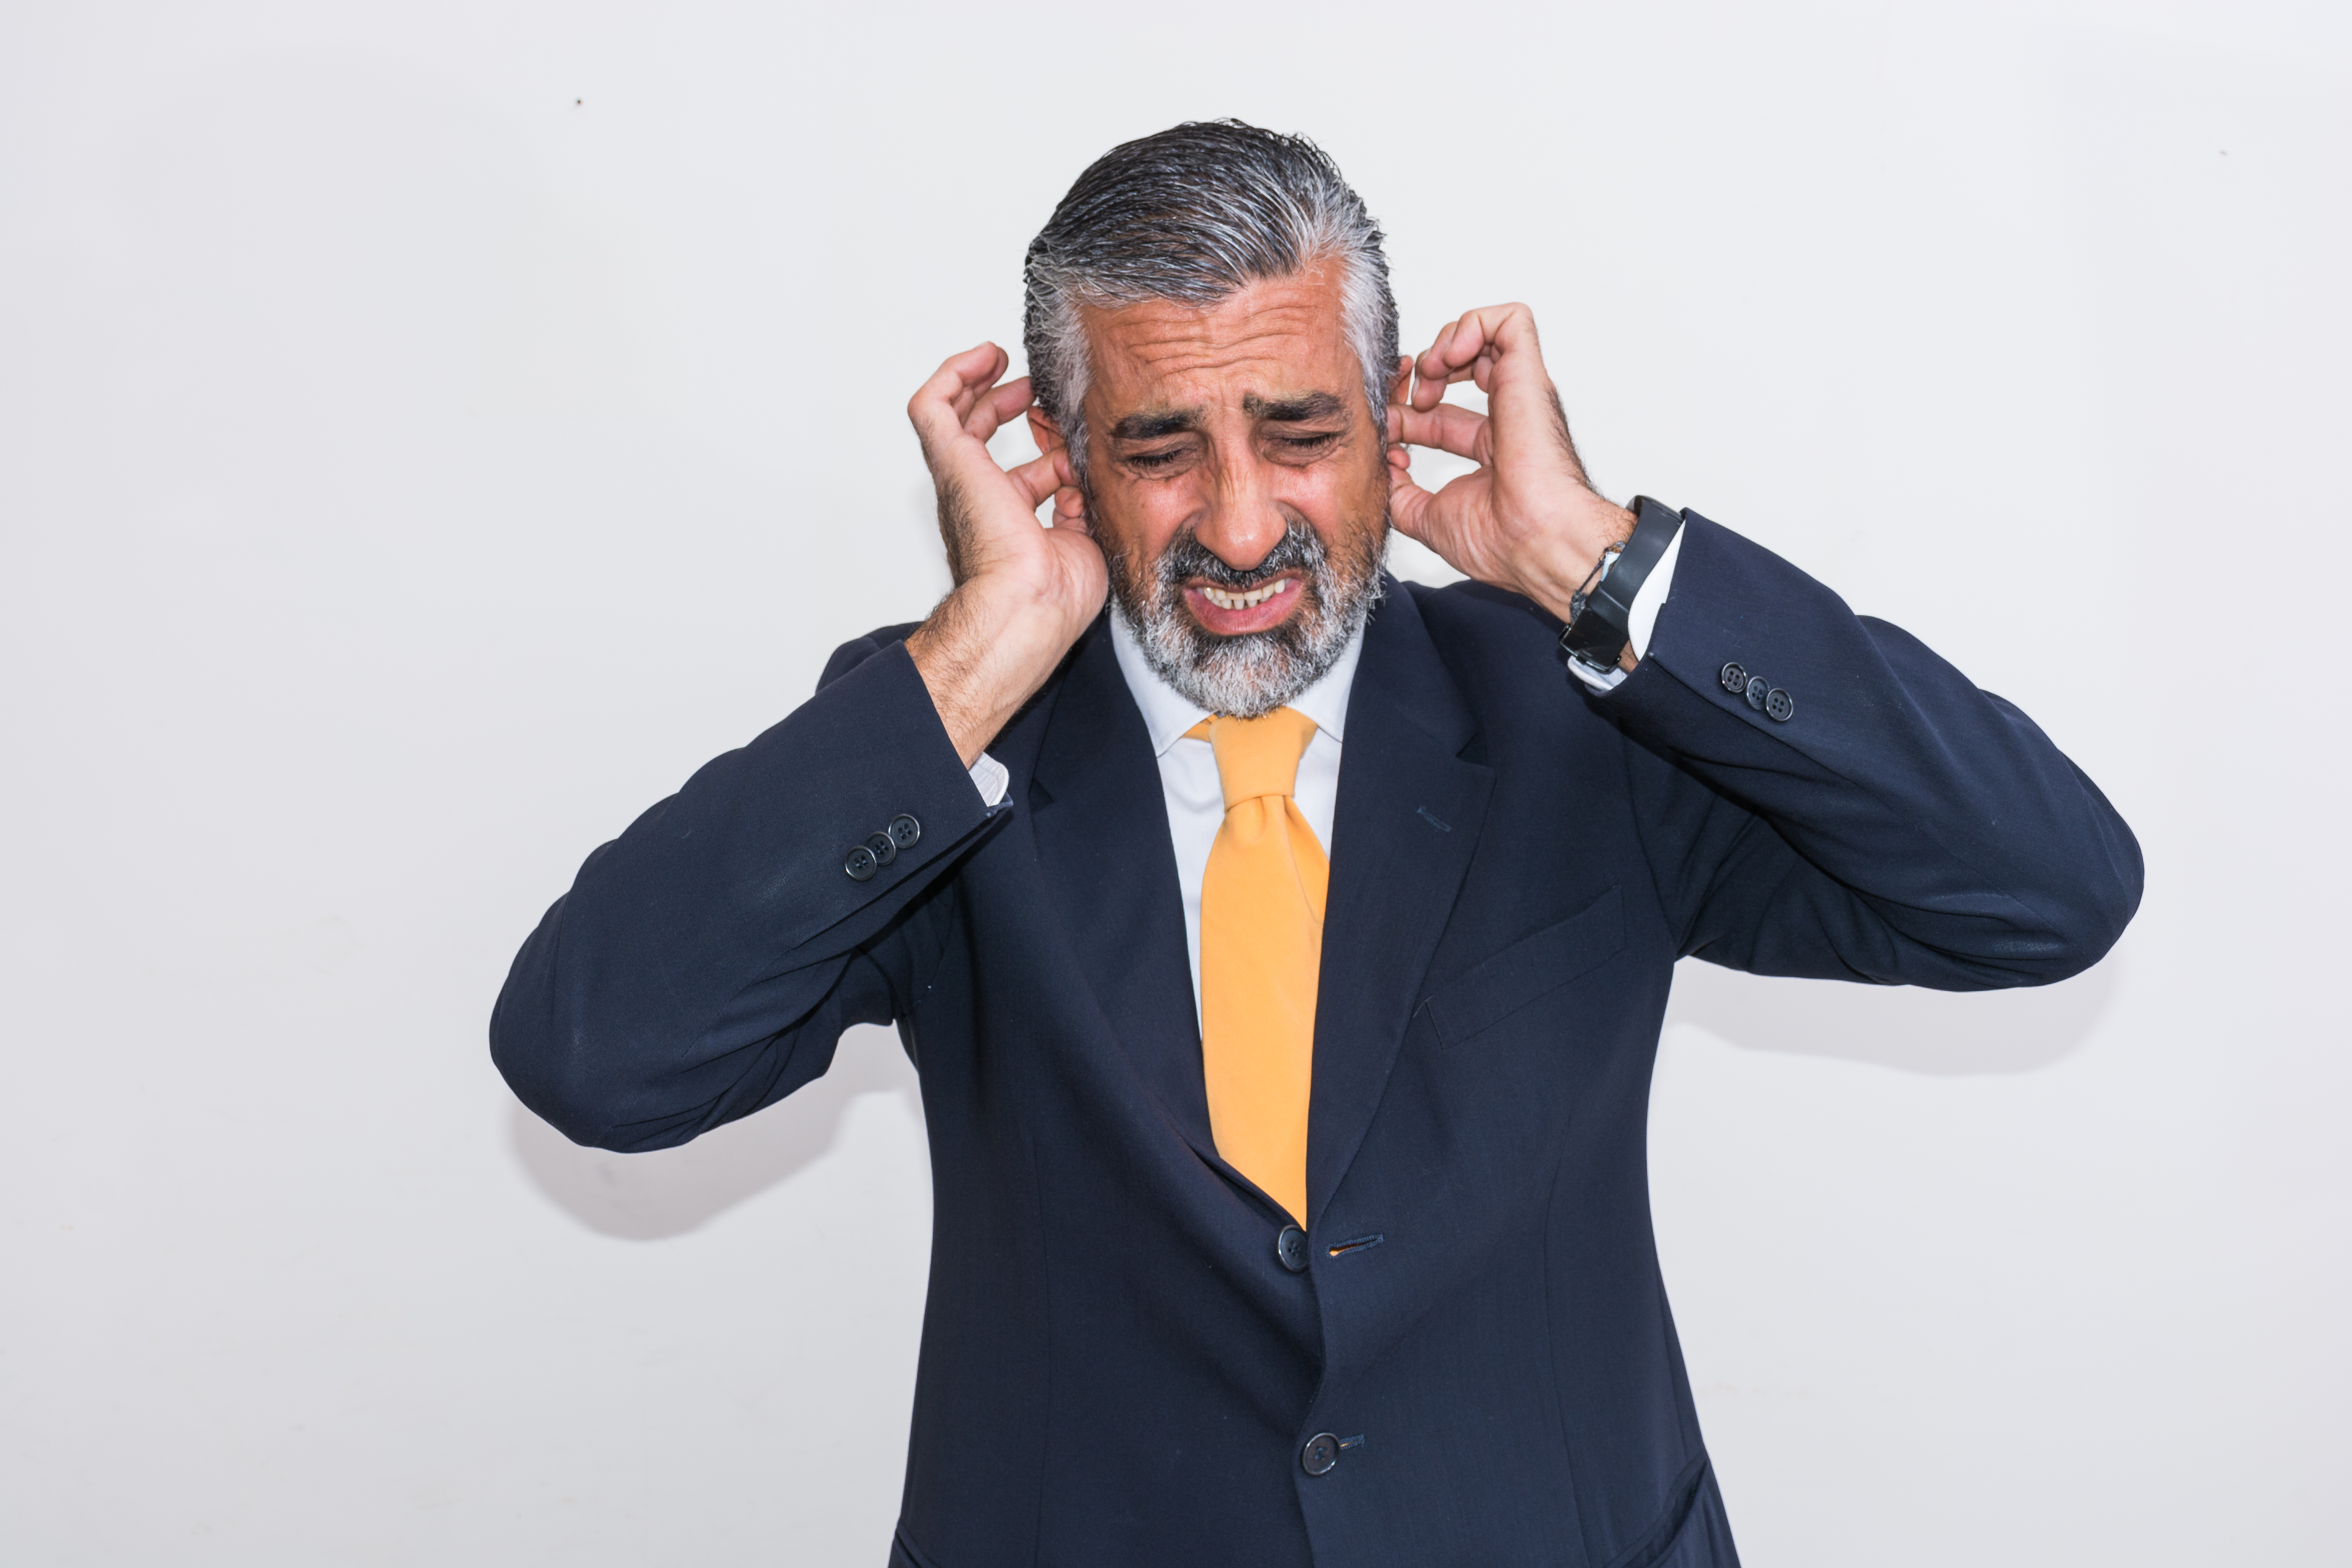 Businessman With Hands Covering Ears Against Wall